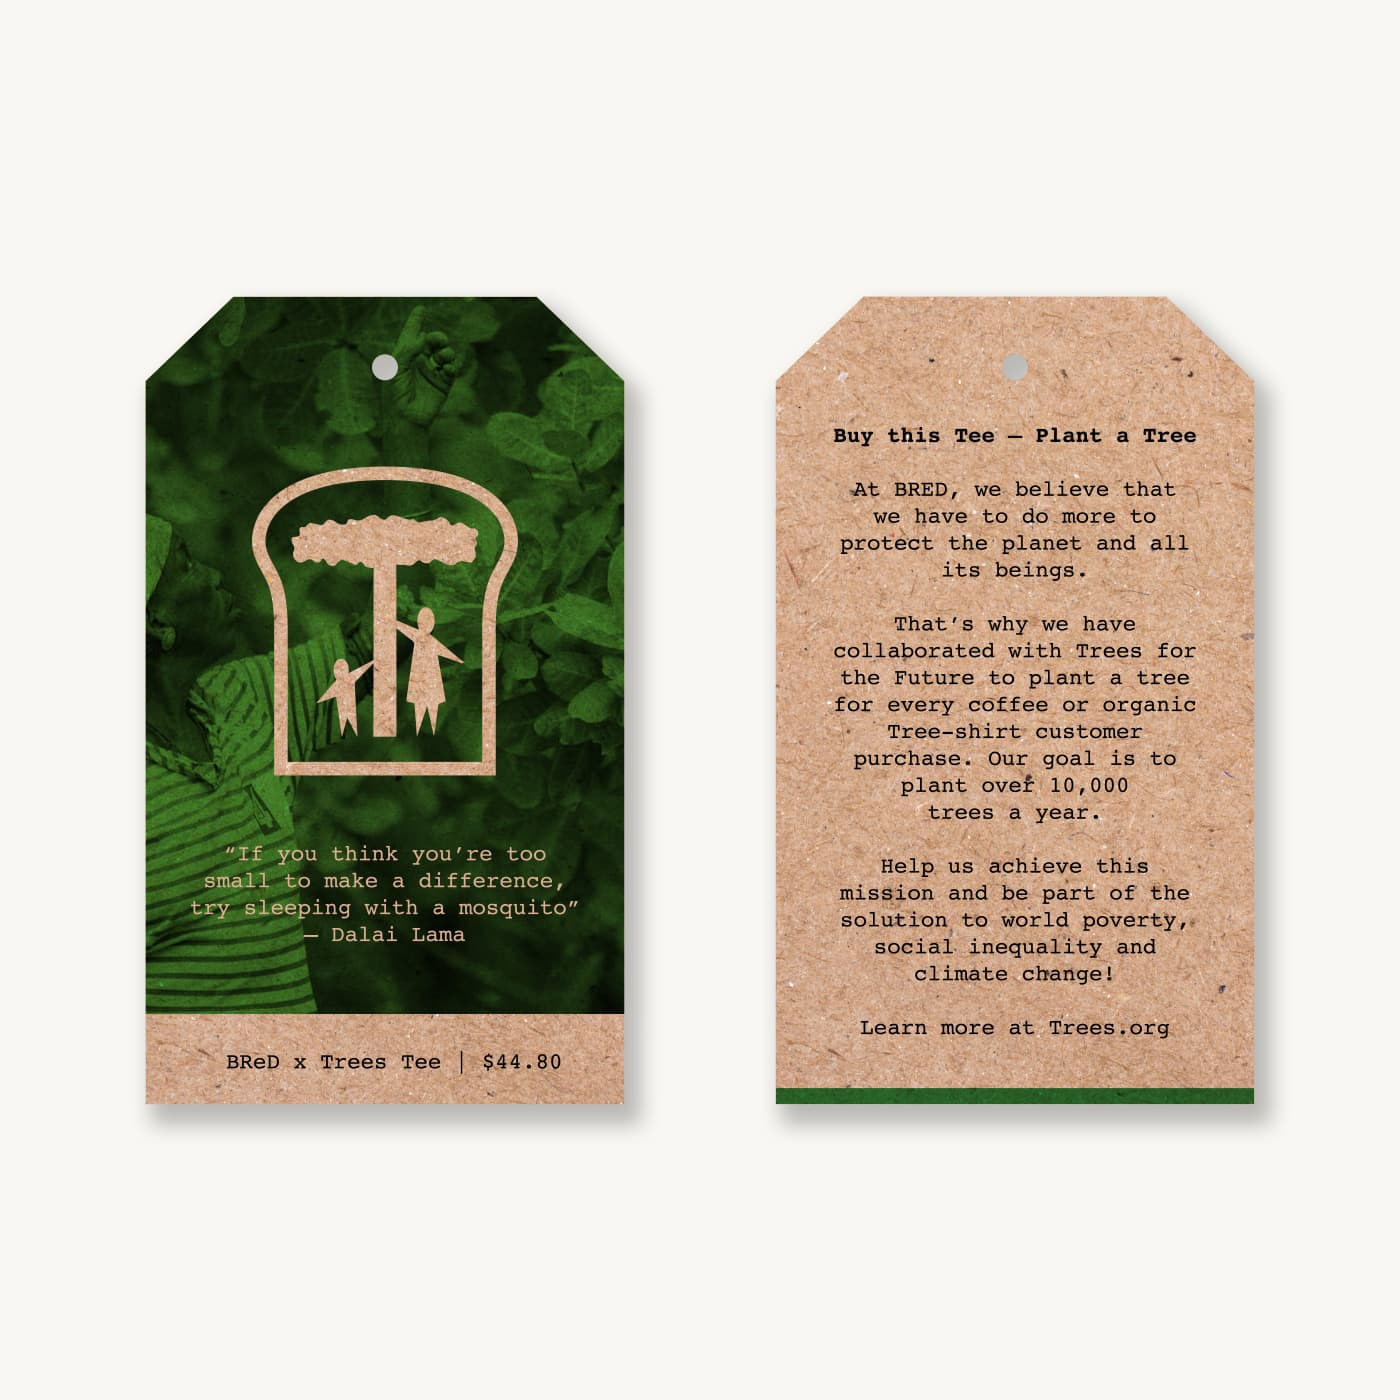 Garment tags in an earth tone, featuring a quote from the Dalai Lama and information about a campaign to plant trees in Africa